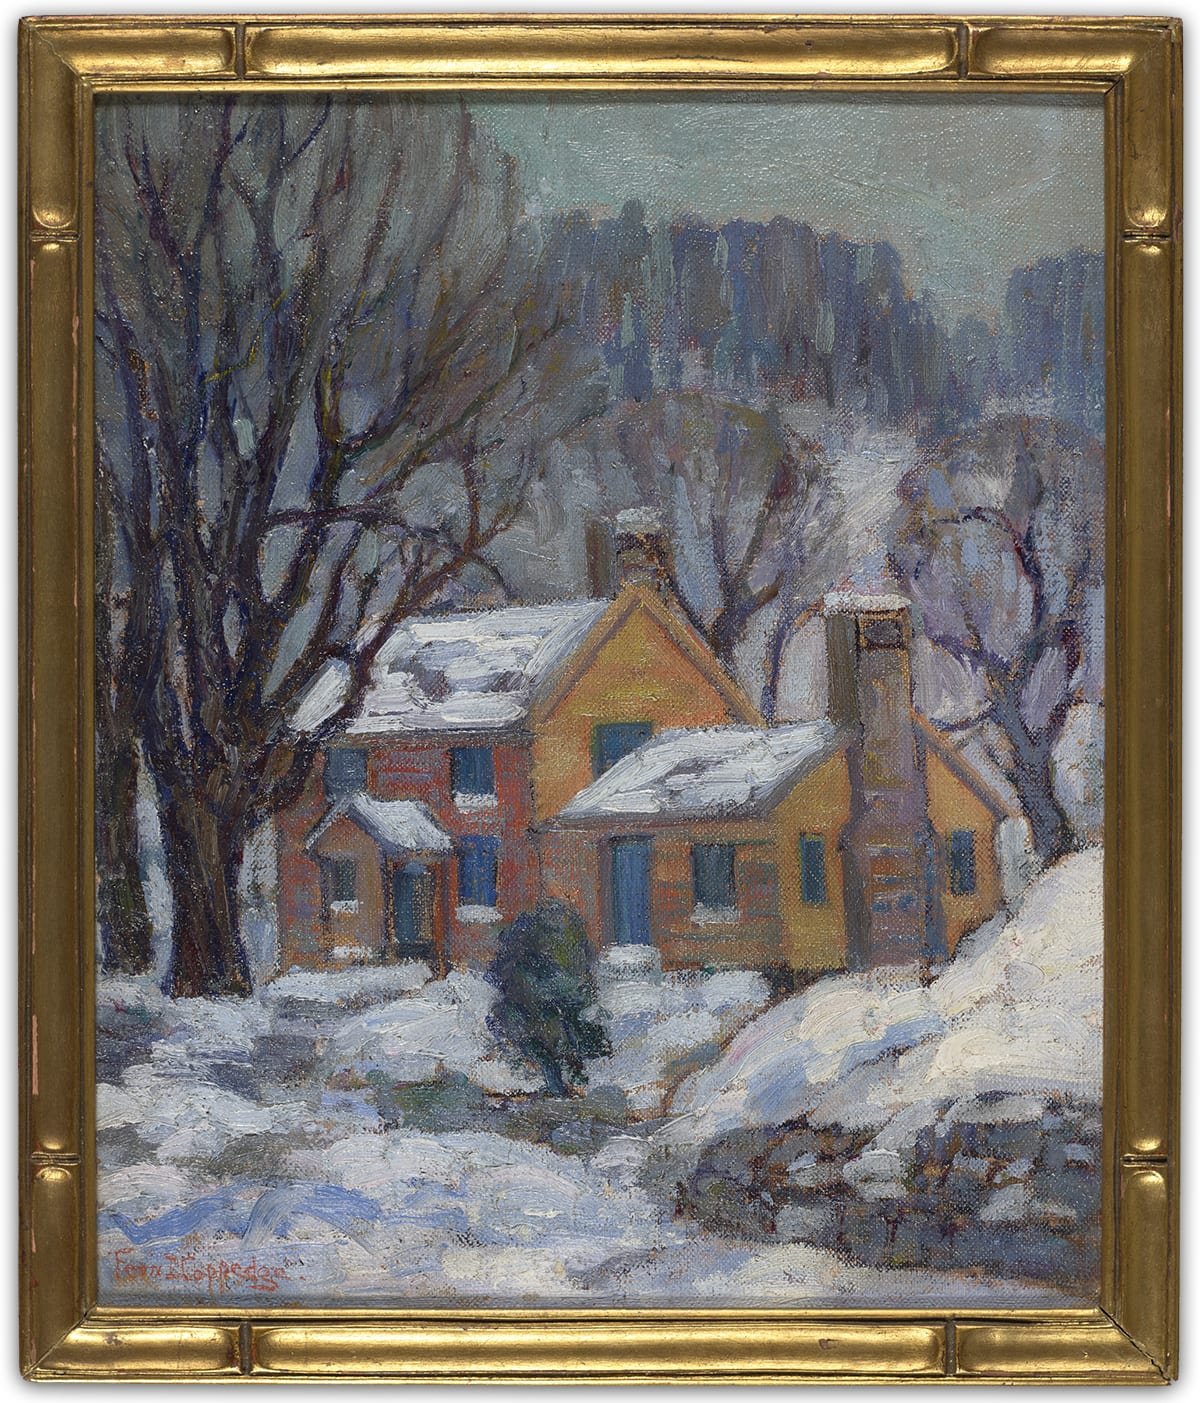 """Little House Next Door"" by Fern Coppedge. Oil on board, 11 ¾ in x 9 ¾ in. Vertical oil painting with thick broad brushstrokes with layers of color framed in a thick gold frame with two small gold lines near the corners on each side. A brown two-story house with a one-story addition to the right sits in the middle of the painting surrounded by five trees with long, bare, bending branches, and landscape covered in snow. A small snow-covered stoop extends past the blue front door which is flanked by blue windows on each side on both stories. The A-frame roof is covered in snow and has a chimney extending at the top on the right. The one-story addition on the right has a blue front door with a window to the right. On the right side of the building a large stone chimney extends past the roof and is flanked by two thin tall windows. Snow covers the yard which is bordered by a gray stone wall. A small bush stands in the corner of the yard. The gray and white sky is visible beyond the trees and a swath of dark vertical strokes resembles mountain landscapes in the background."